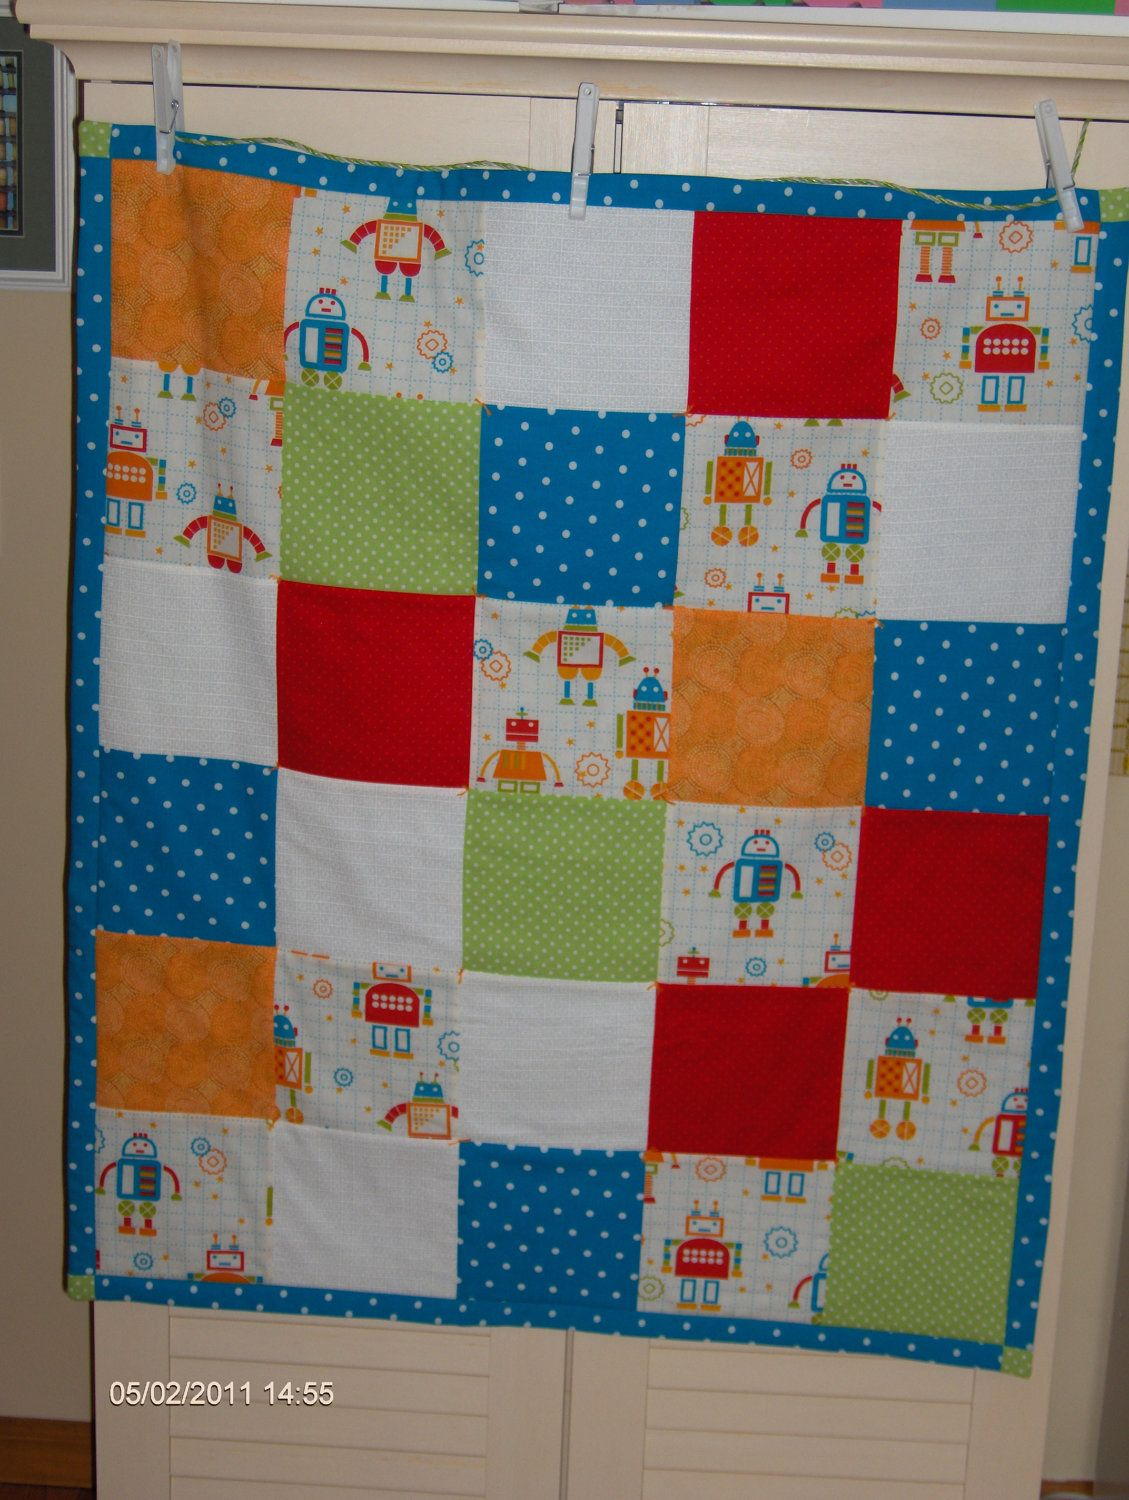 Robots and Polka Dots Baby Boy Patchwork Quilt, Play Mat in ... : quilt play - Adamdwight.com